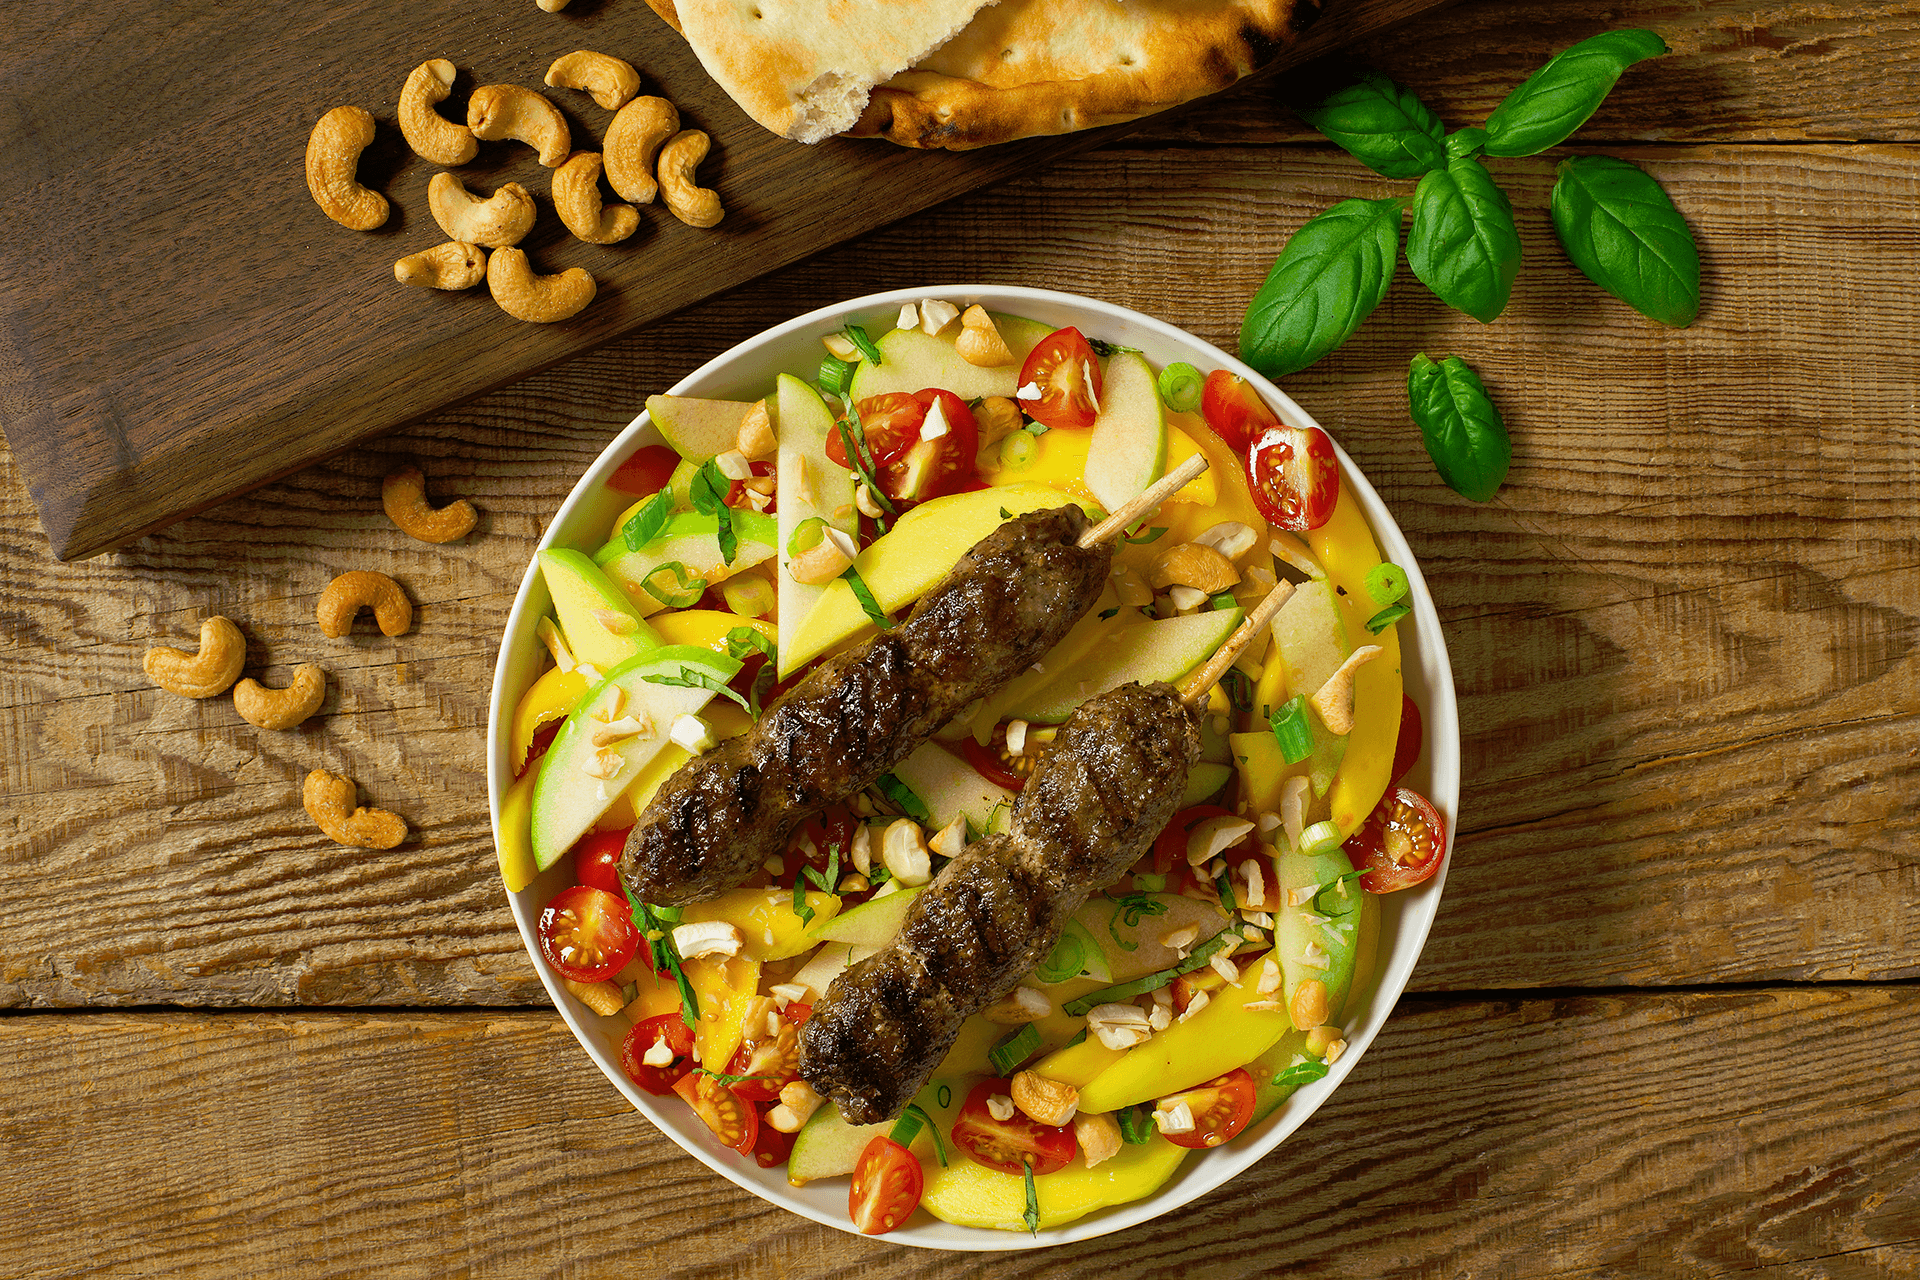 Hot and lazy summer days call for light meals like our Lamb Tonight Lamb Kabobs with Mango Apple Salad.